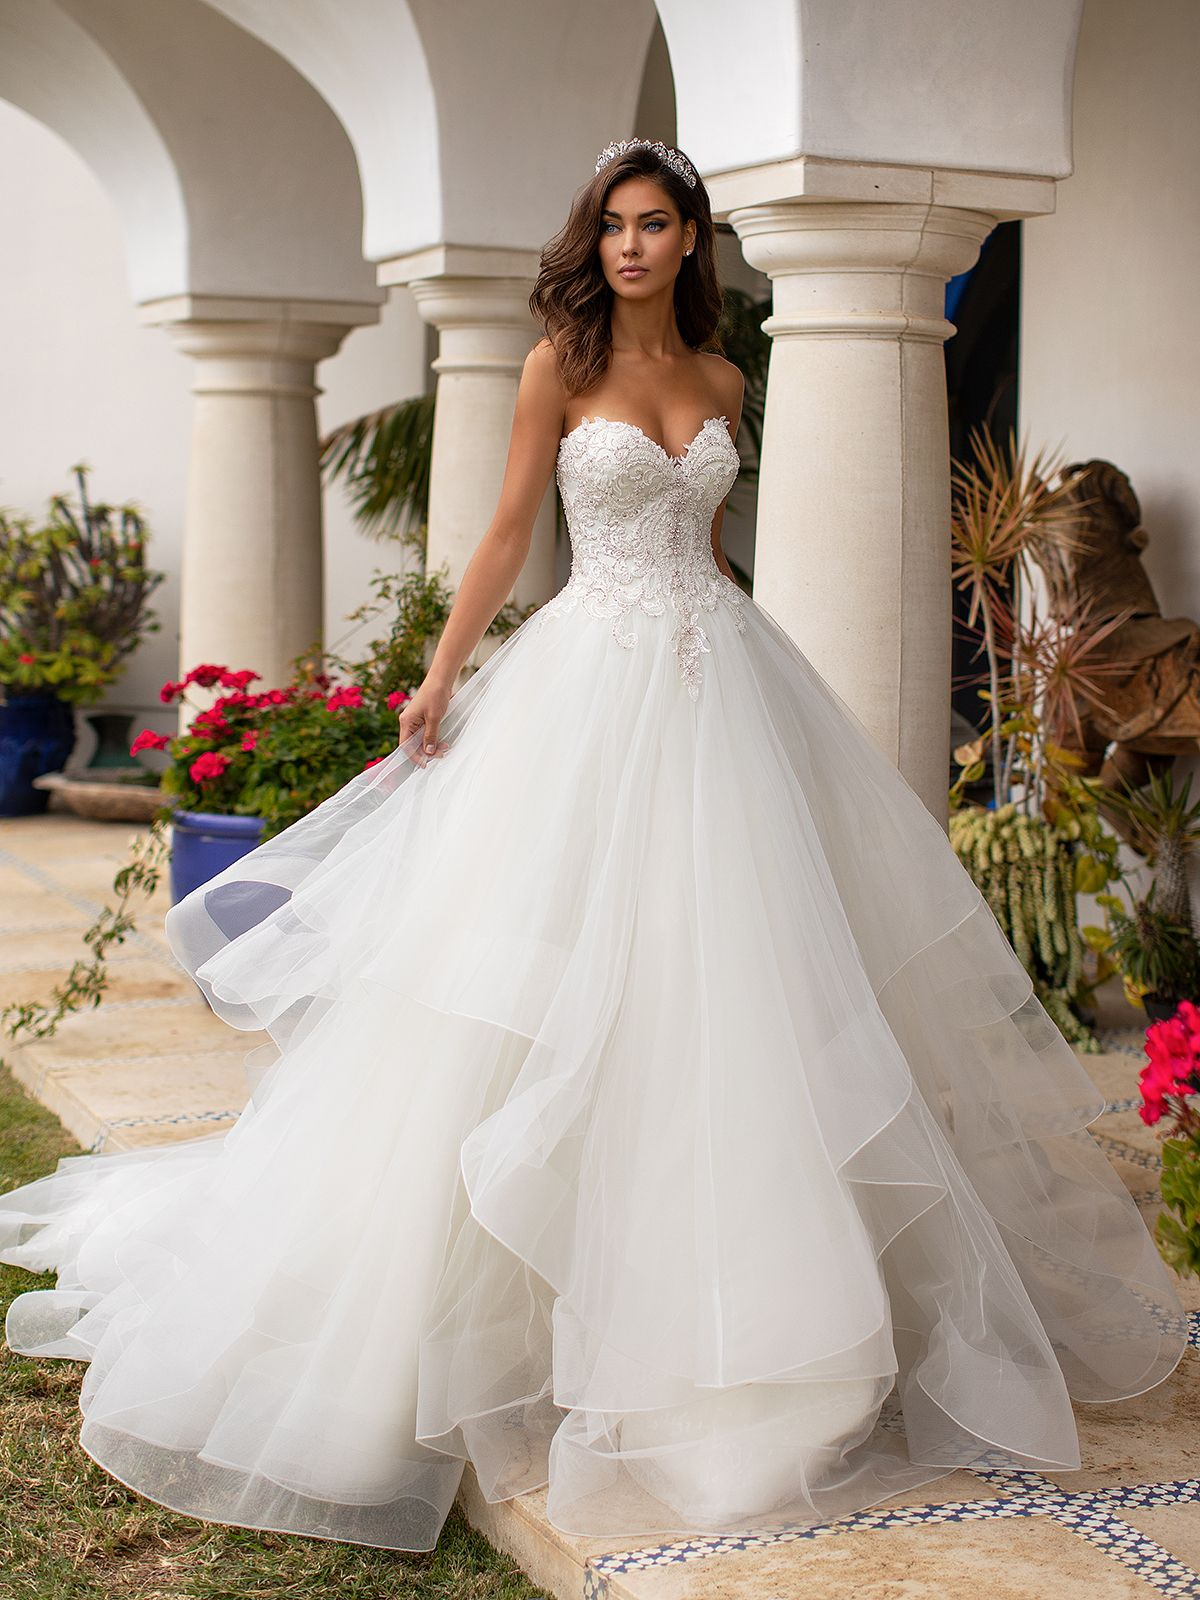 Sweetheart Whimsical Tulle Ball Gown Moonlight Couture